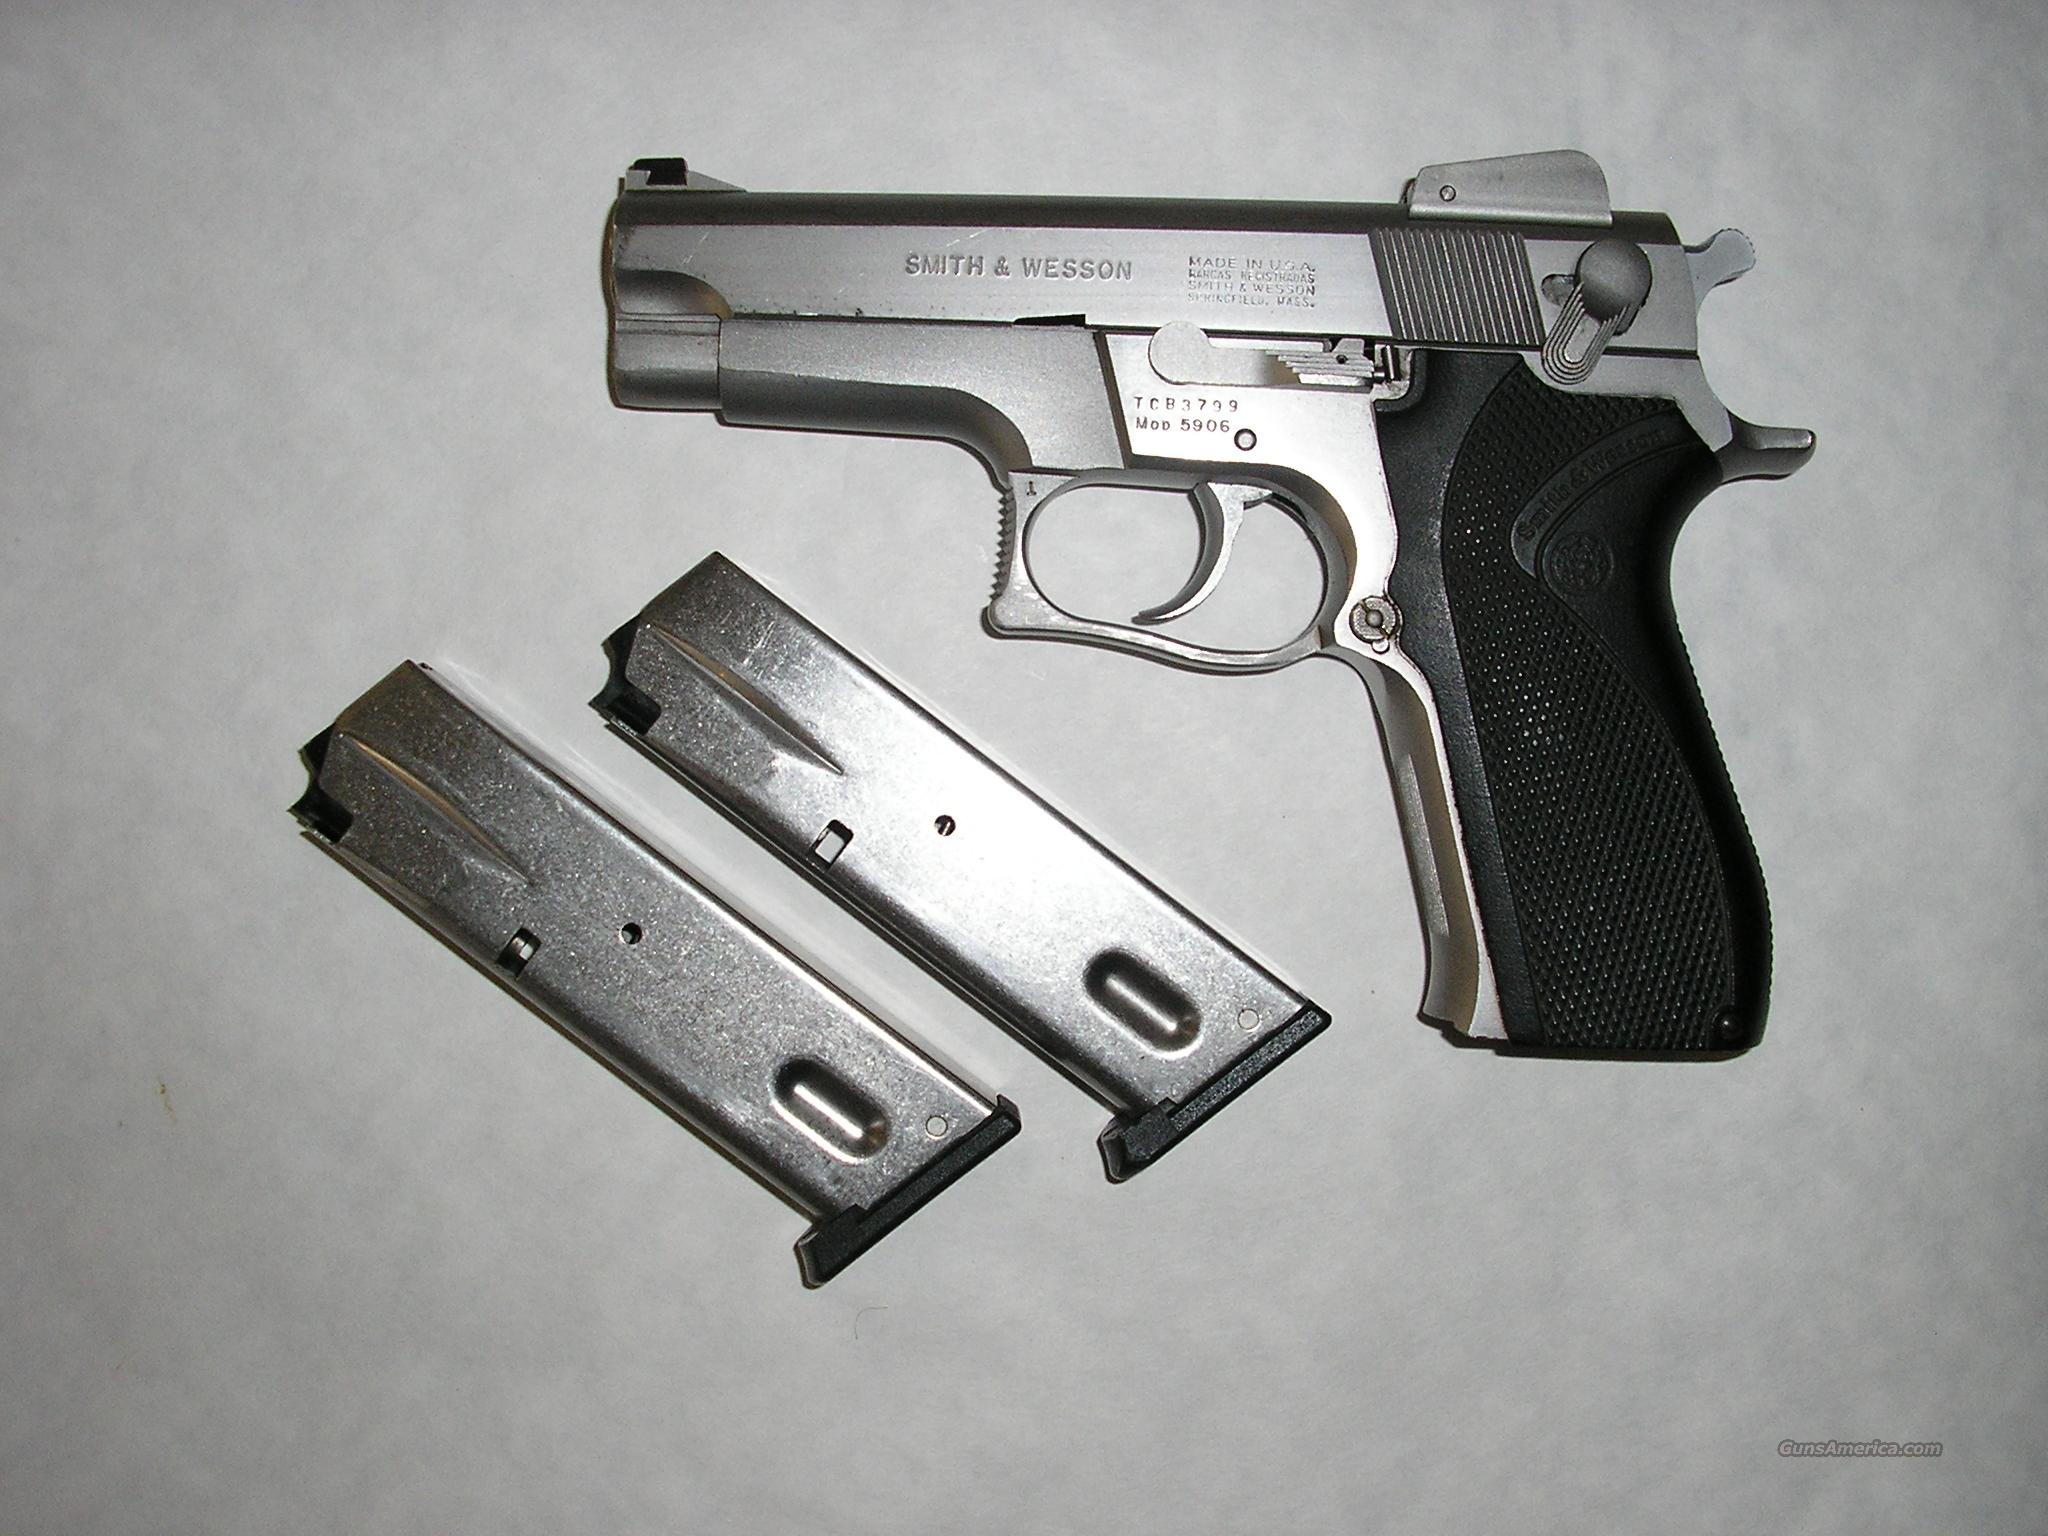 SMITH & WESSON 9MM STAINLESS 5906  Guns > Pistols > Smith & Wesson Pistols - Autos > Alloy Frame